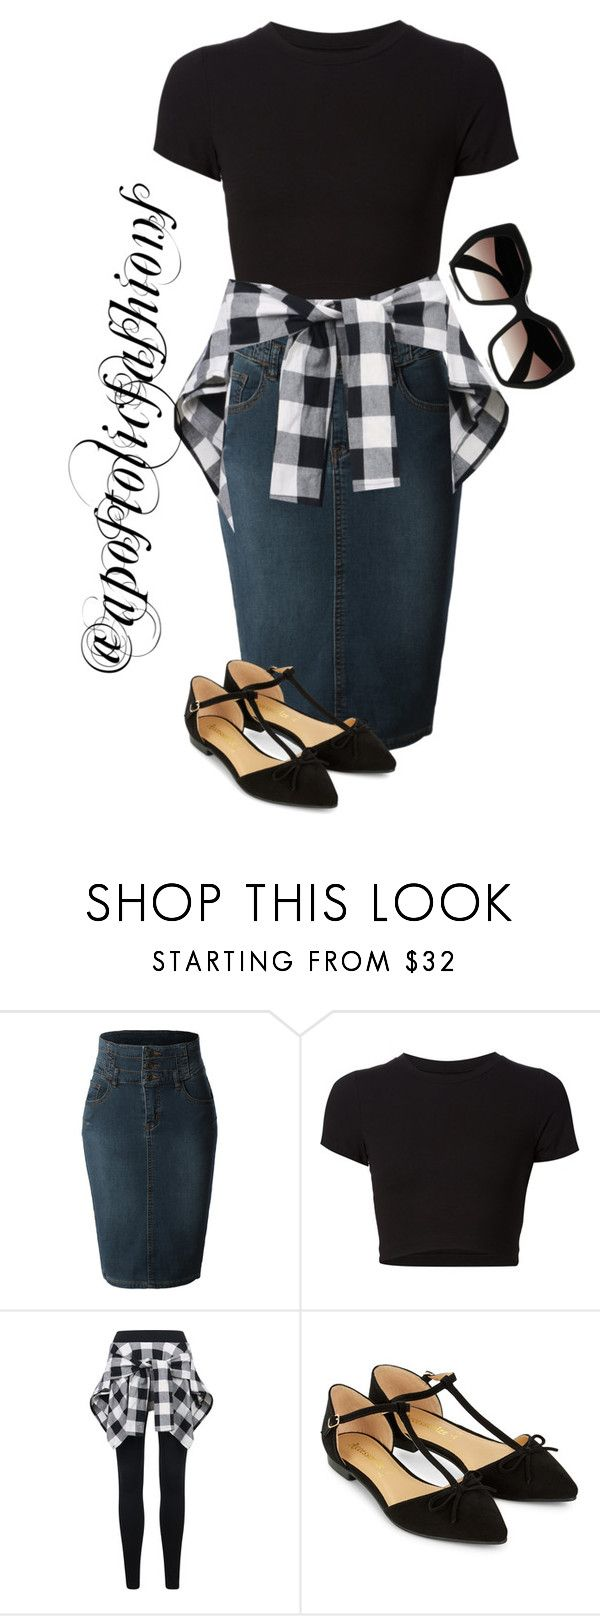 """""""Apostolic Fashions #1325"""" by apostolicfashions ❤ liked on Polyvore featuring LE3NO, Getting Back To Square One, Accessorize, Prada, modestlykay and modestlywhit"""